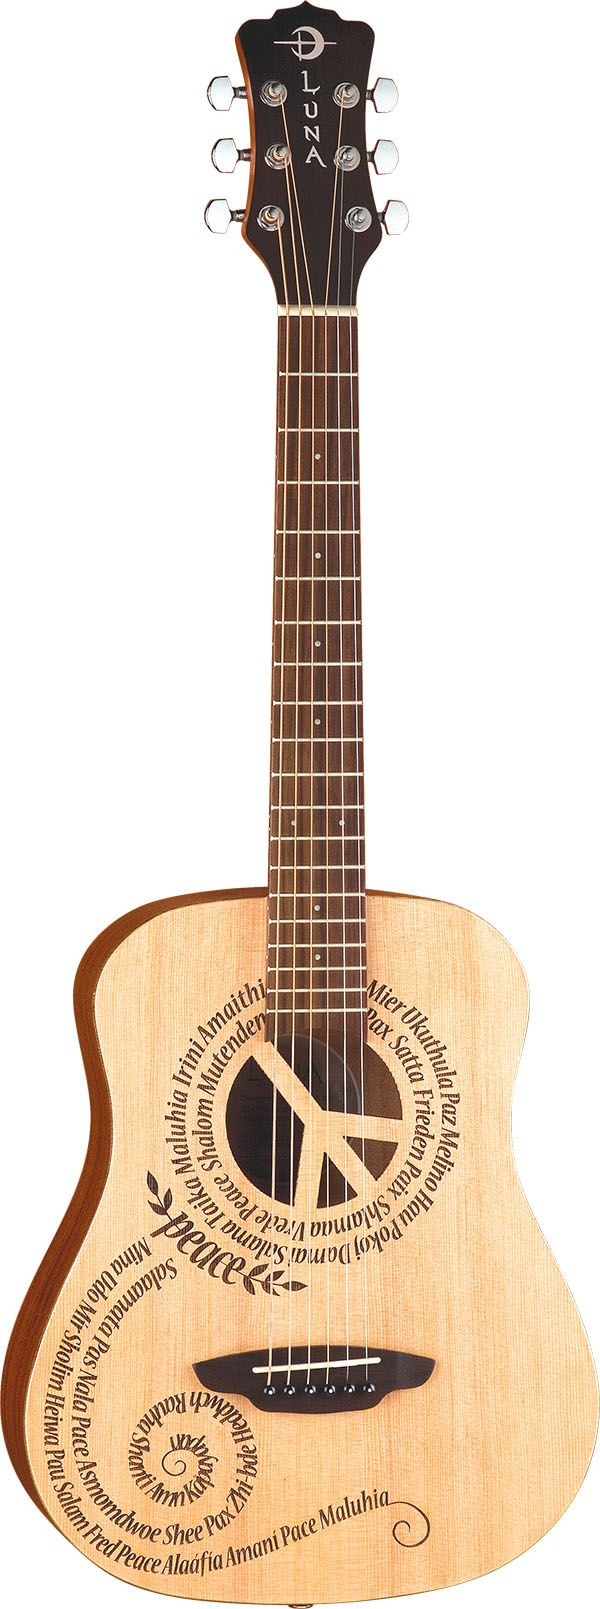 Luna Guitars - Safari Peace. ~This is the Luna I have. Very sweet sound, and comfortable to play.~